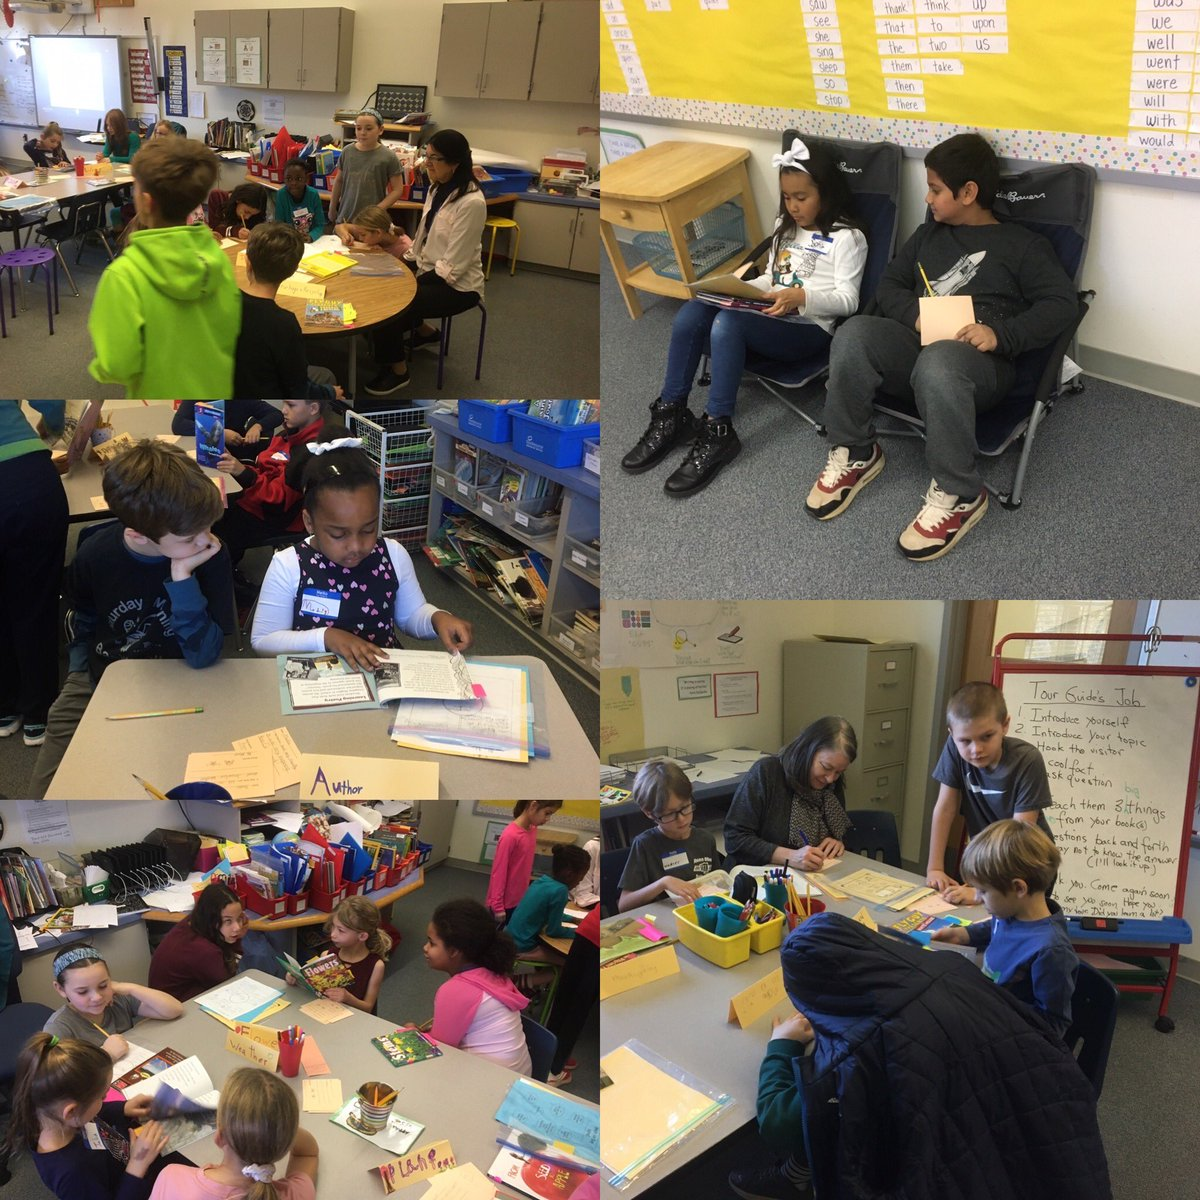 Second grade readers sharing their knowledge of non fiction text with 4th Grade readers.<a target='_blank' href='http://twitter.com/GlebeAPS'>@GlebeAPS</a> <a target='_blank' href='http://twitter.com/GlebeITC'>@GlebeITC</a> <a target='_blank' href='https://t.co/m0NvWl312e'>https://t.co/m0NvWl312e</a>